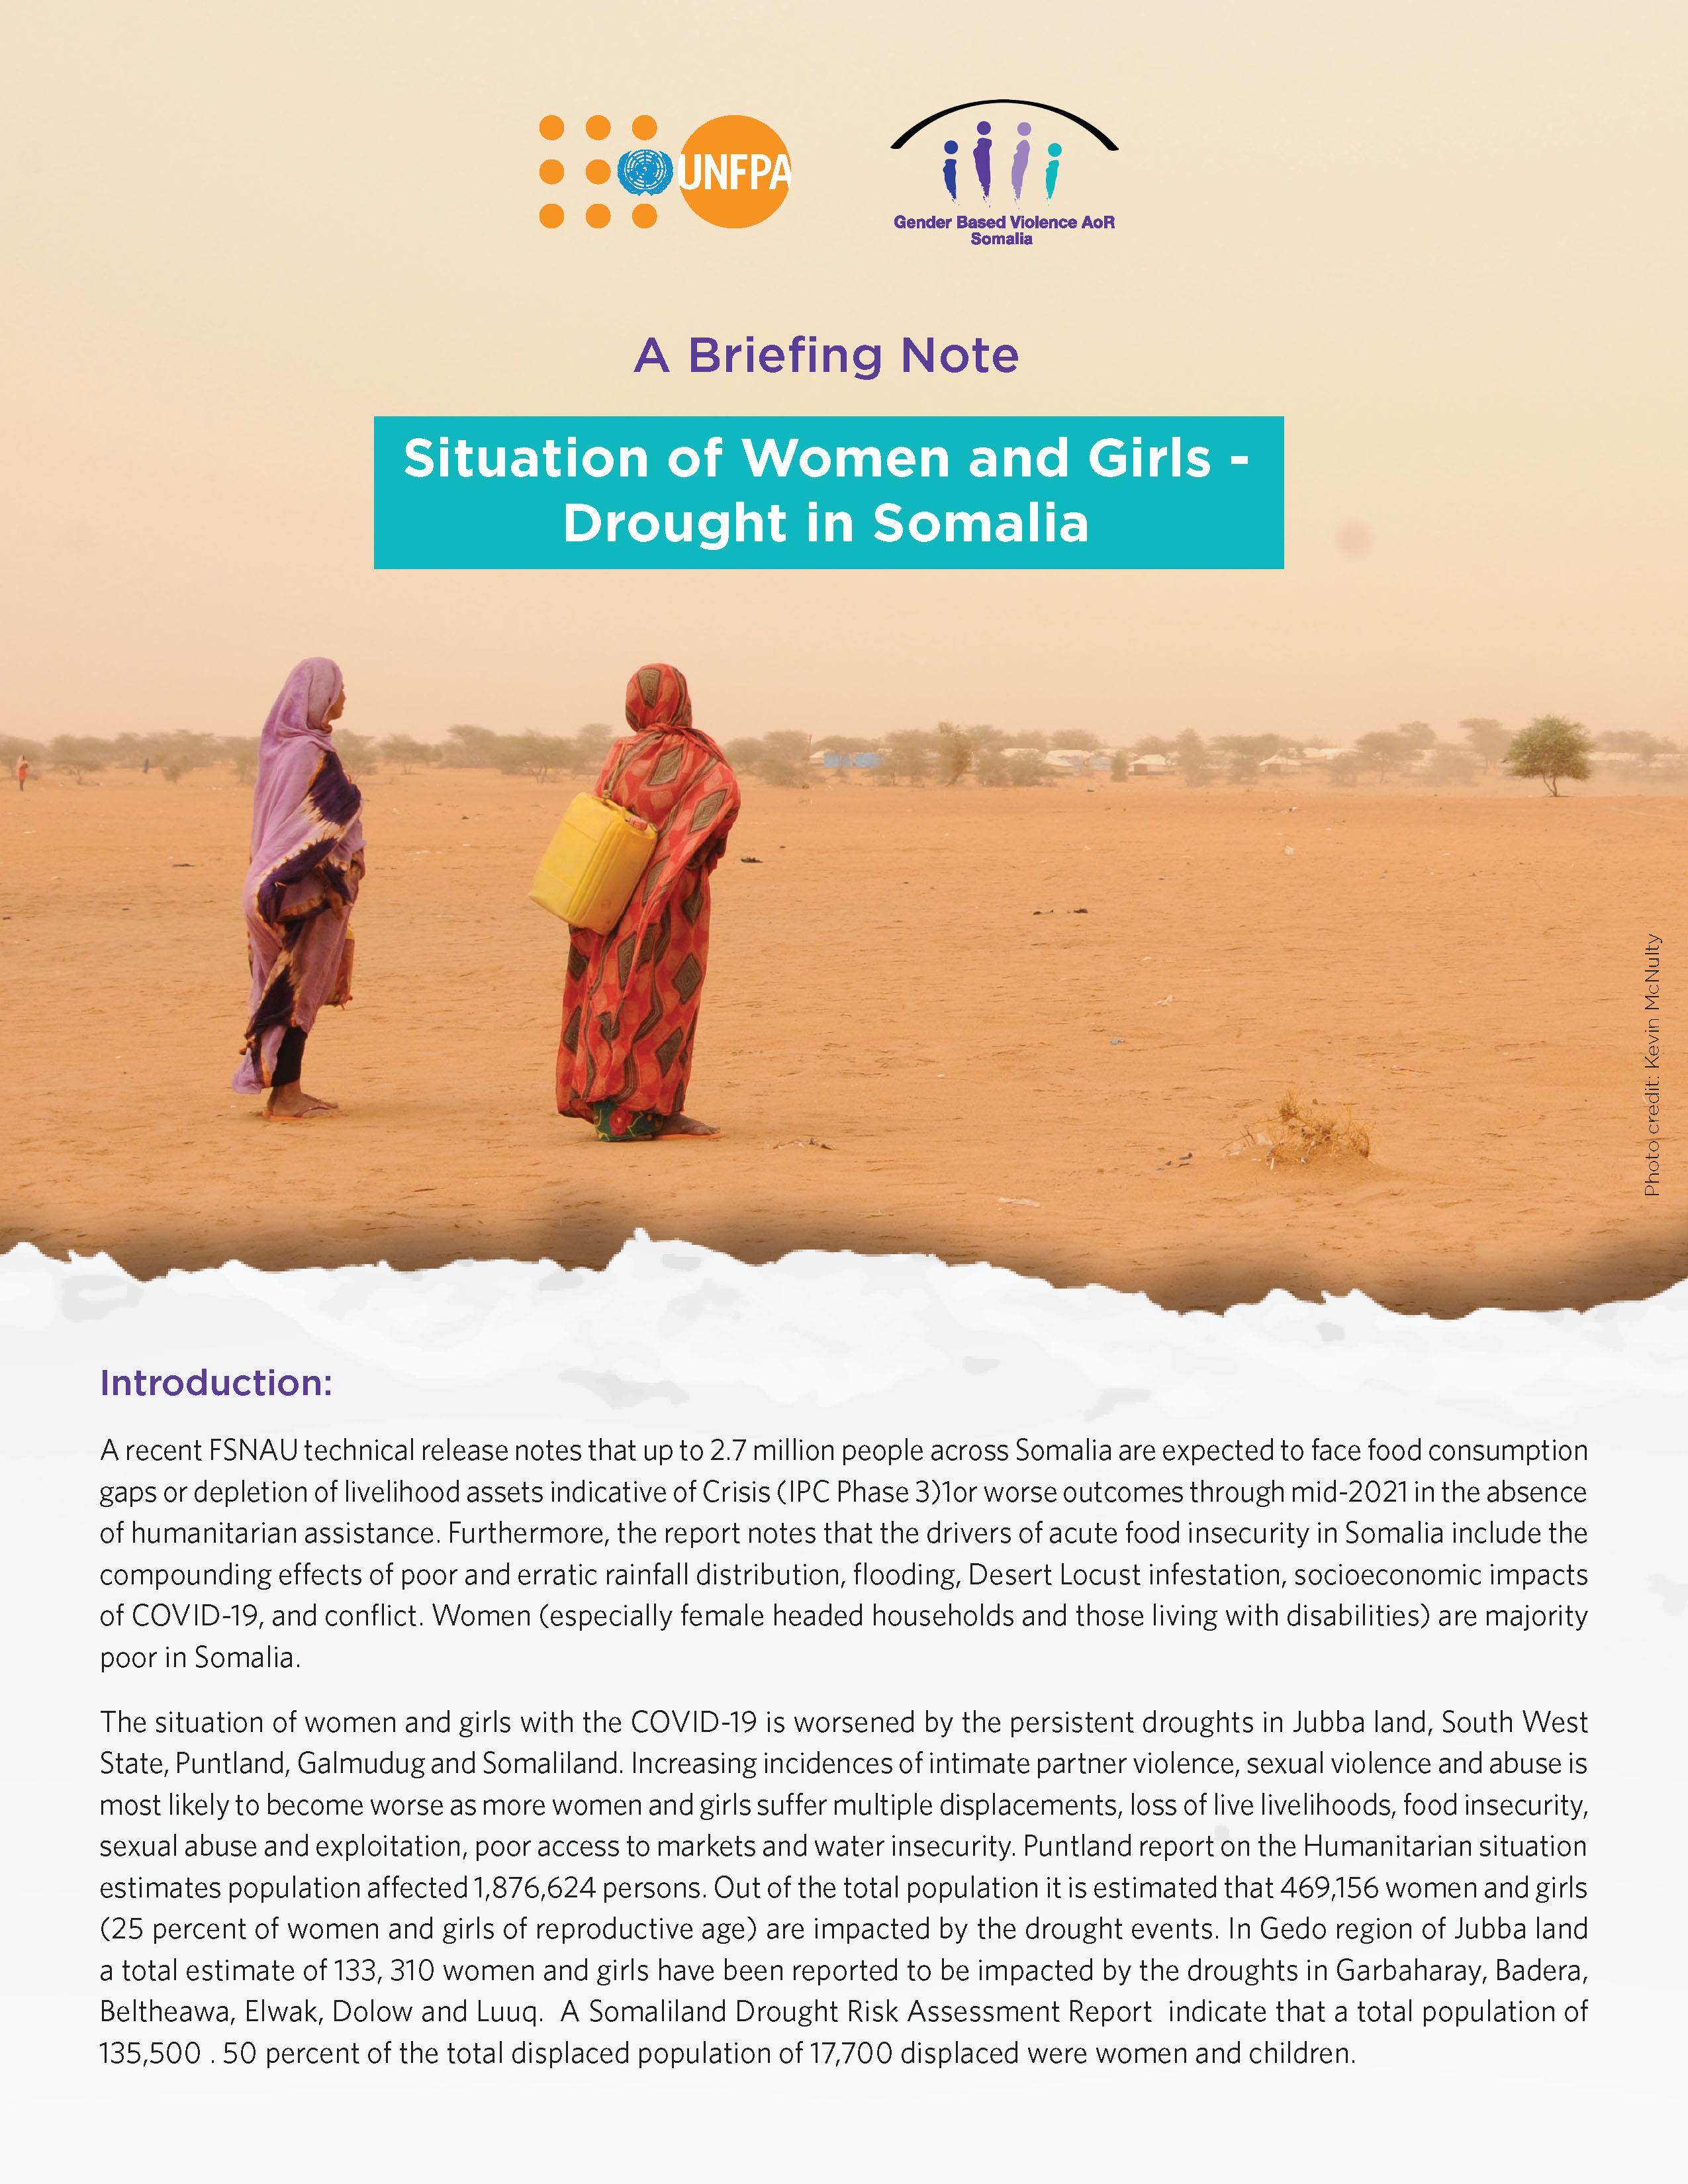 Situation of Women and Girls - Drought in Somalia